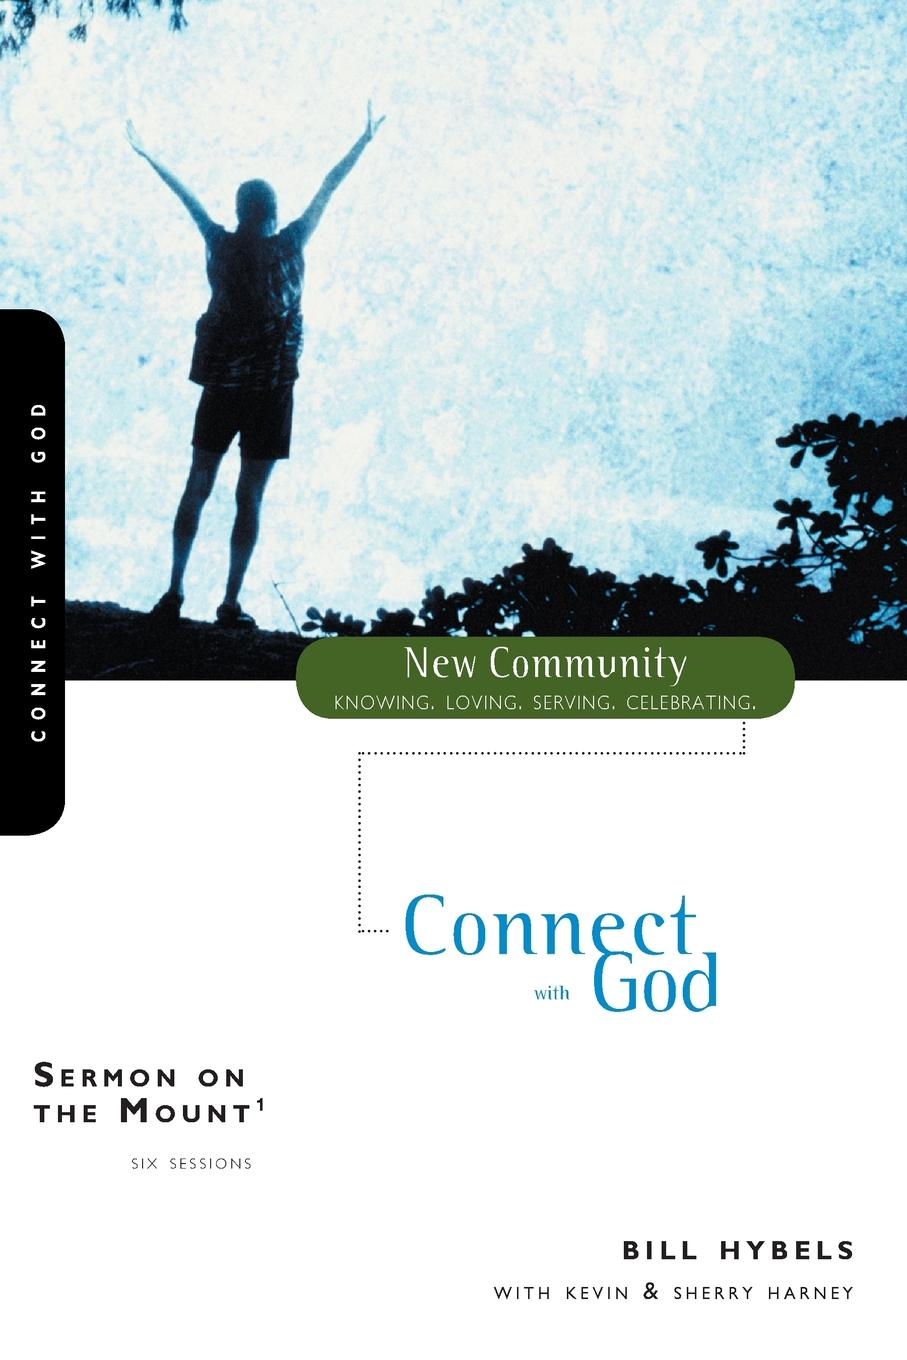 Bill Hybels Sermon on the Mount 1. Connect with God bill hybels sermon on the mount 1 connect with god